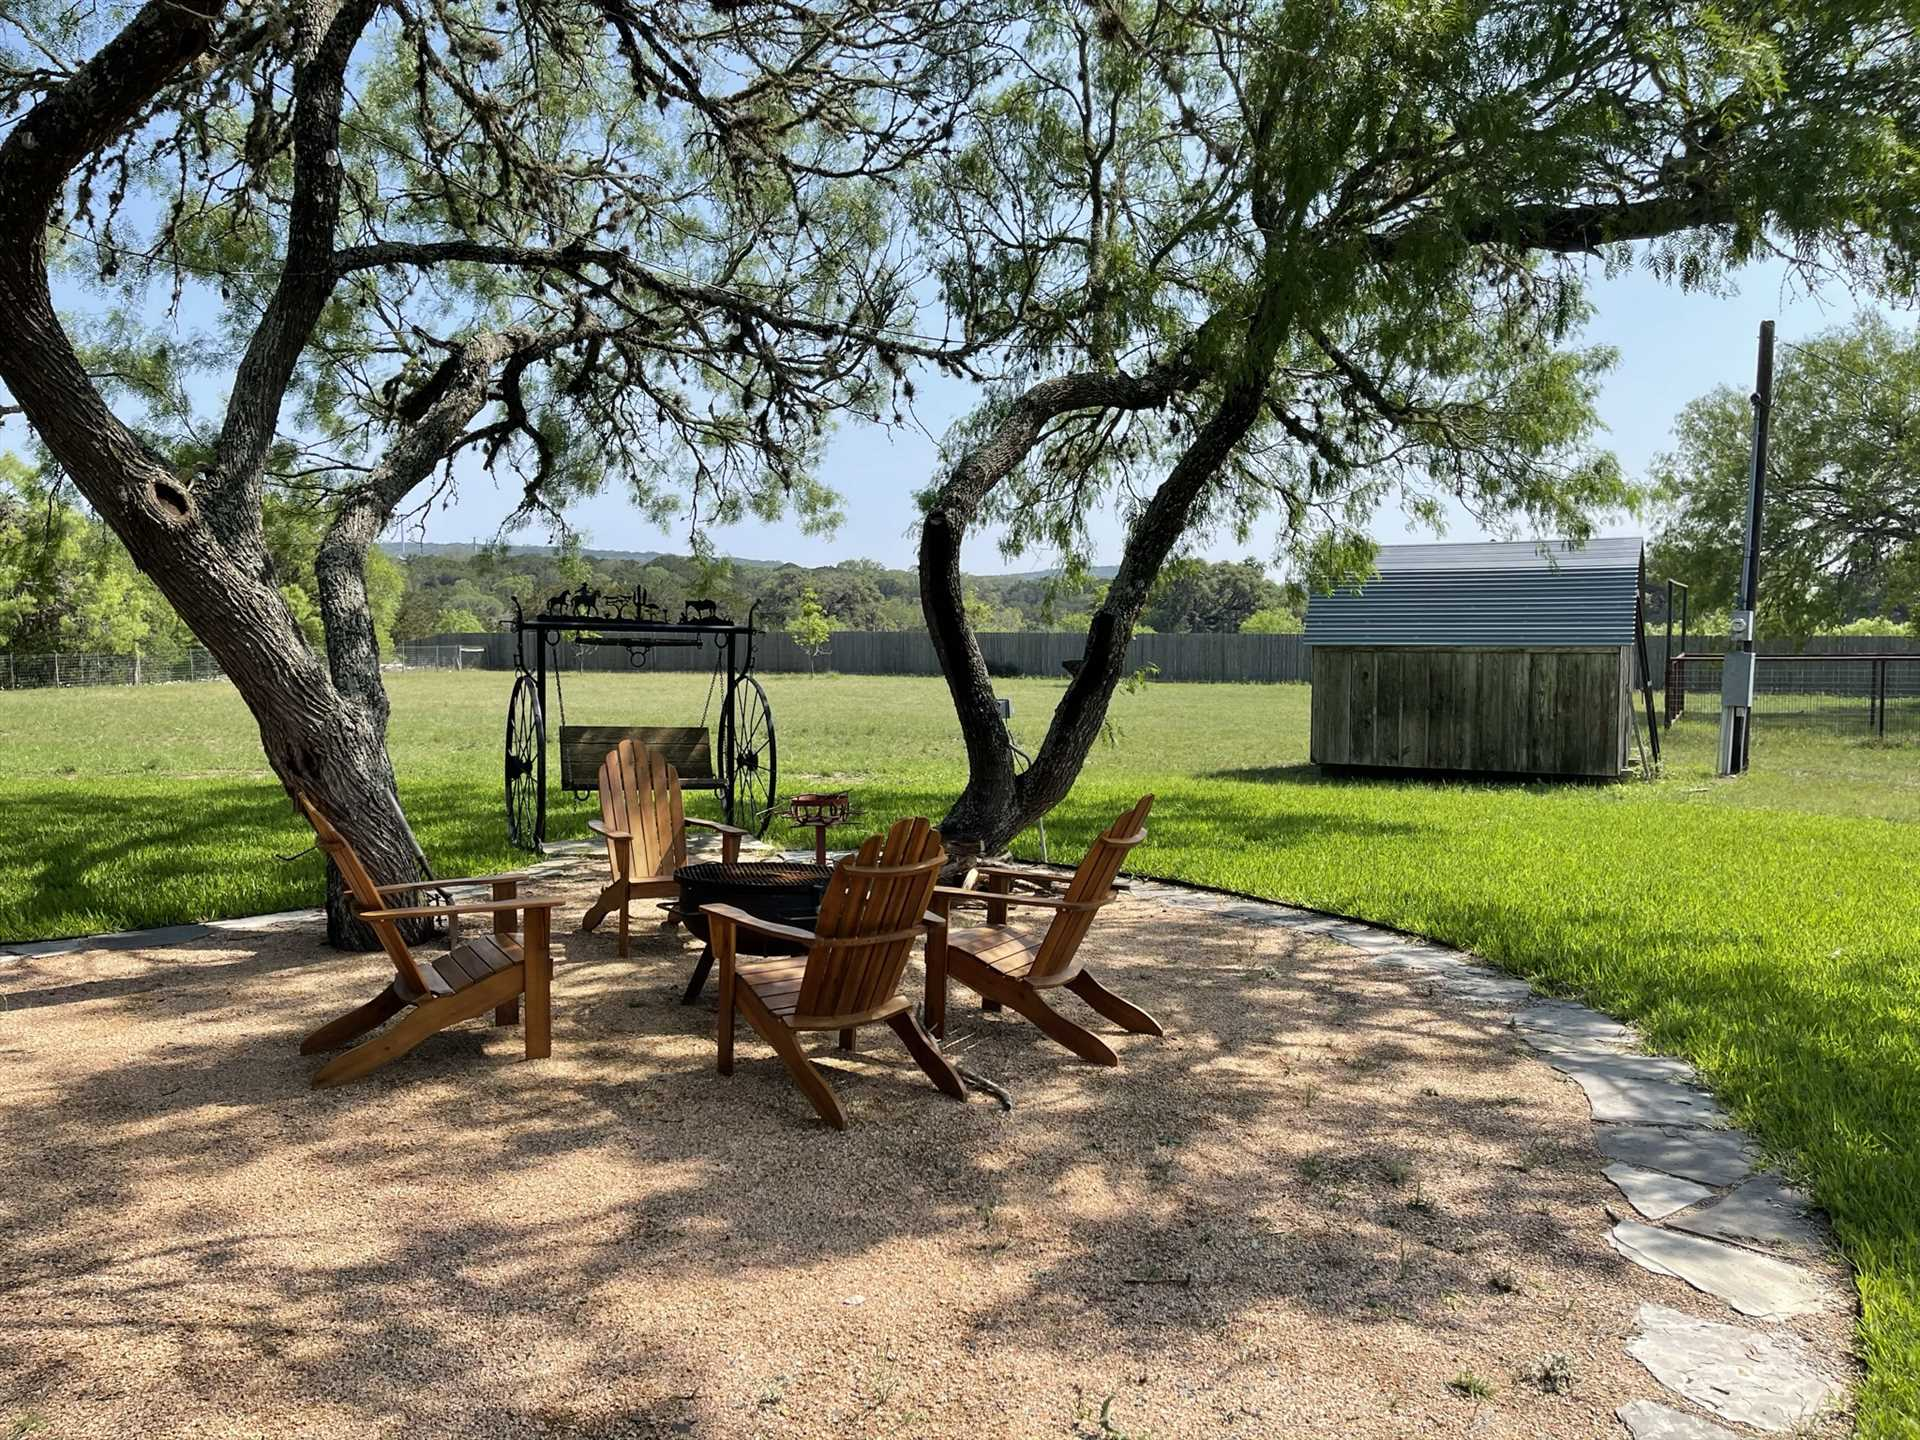 Kick back in an Adirondack chair, or snuggle on the swing, as you enjoy snacks, sunsets, and star gazing around the fire pit!